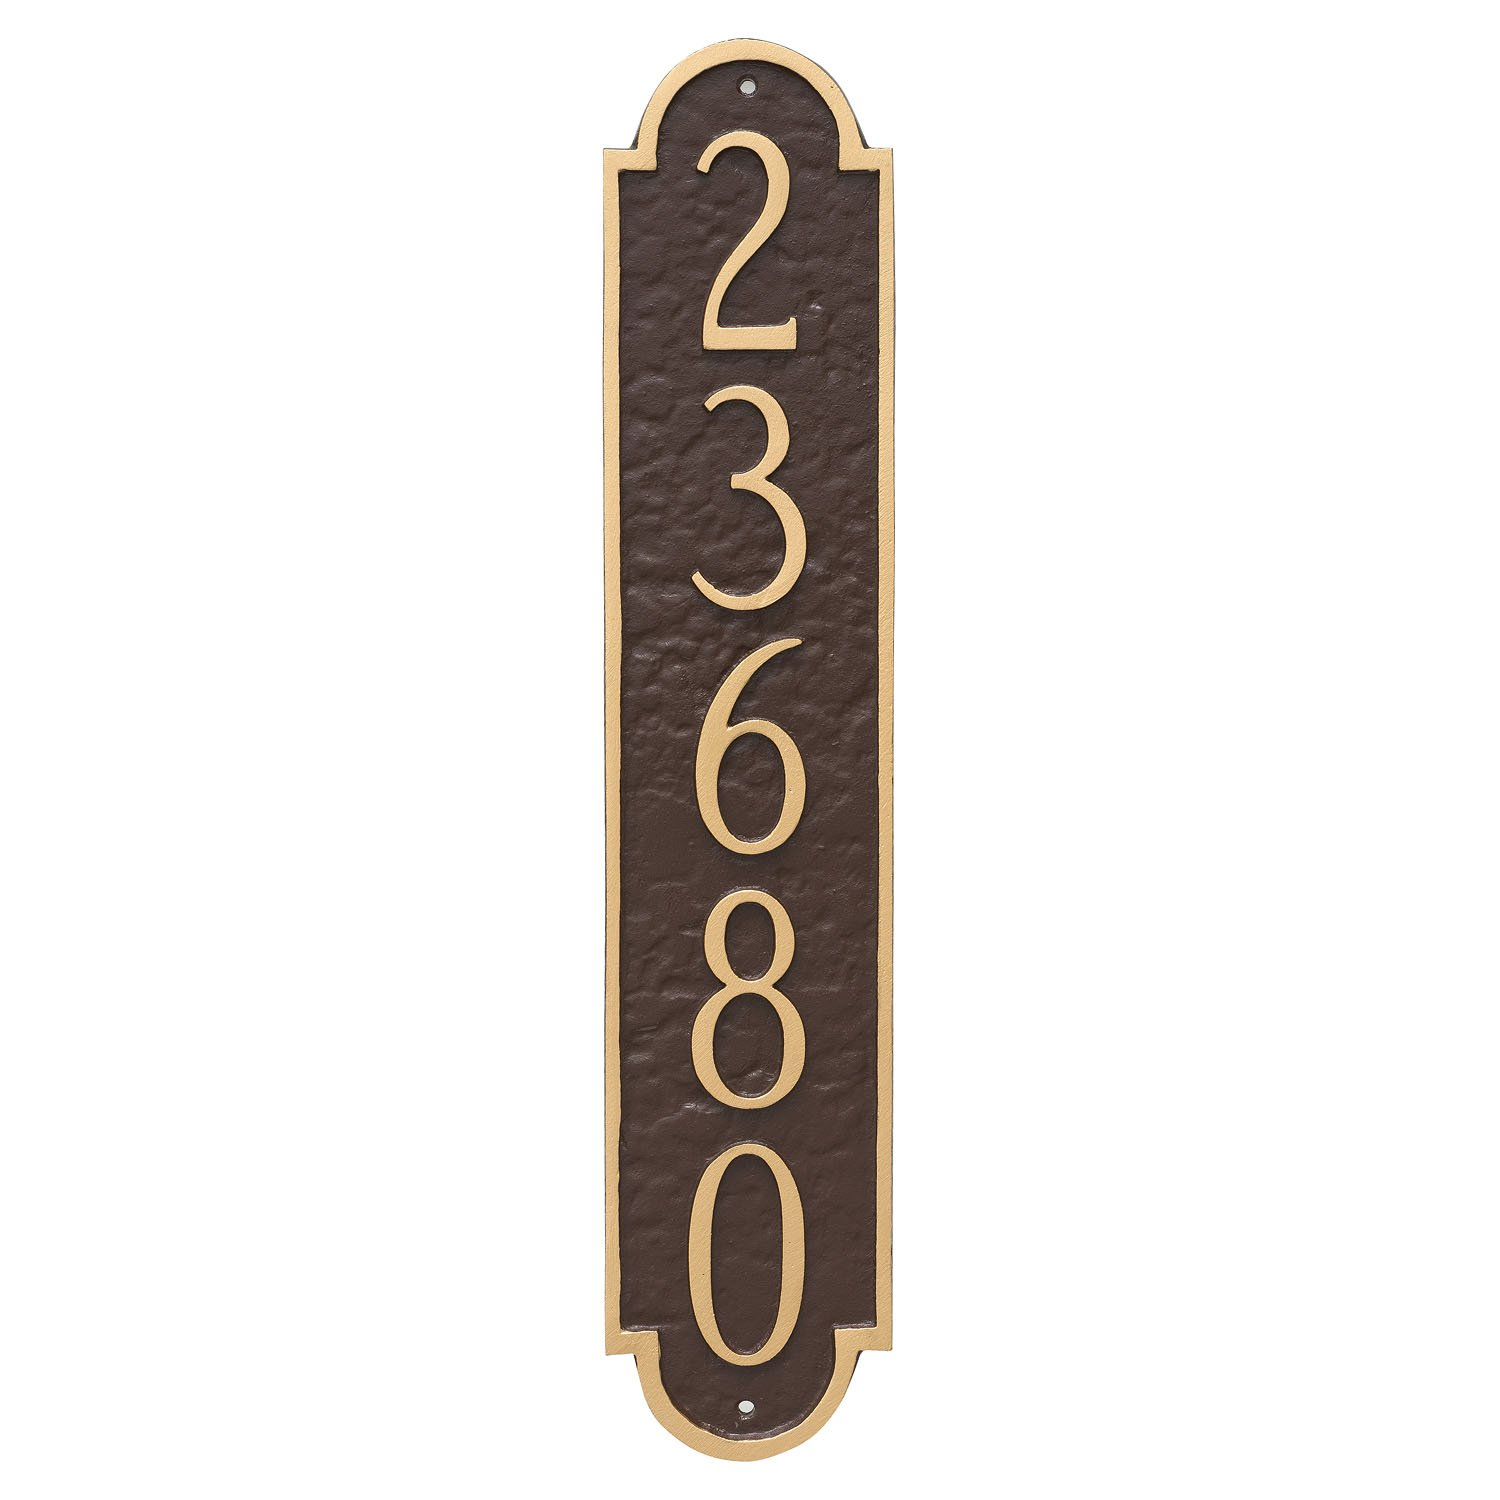 Montague Metal PCS-0128S1-W-BW Rockford Column Address Sign Plaque, 18.75'' x 3.75'', Black/White